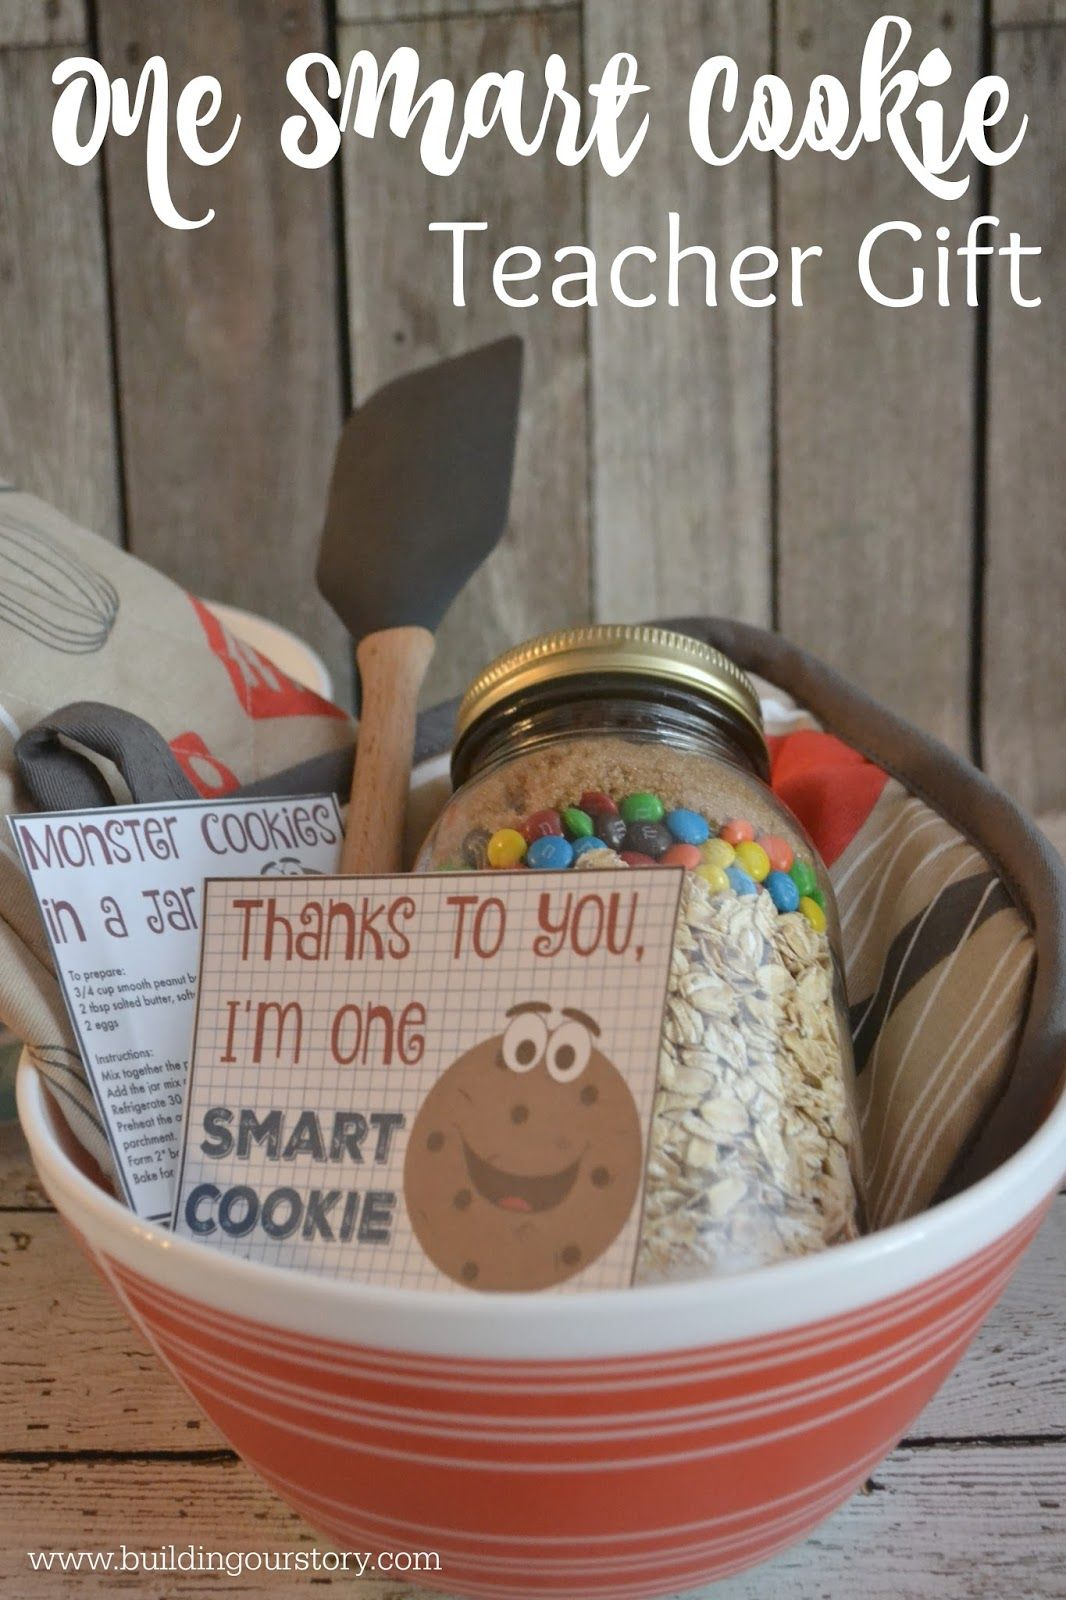 One Smart Cookie End Of The Year Teacher Gift Diy Teacher Gifts Teacher Christmas Gifts Teacher Gifts